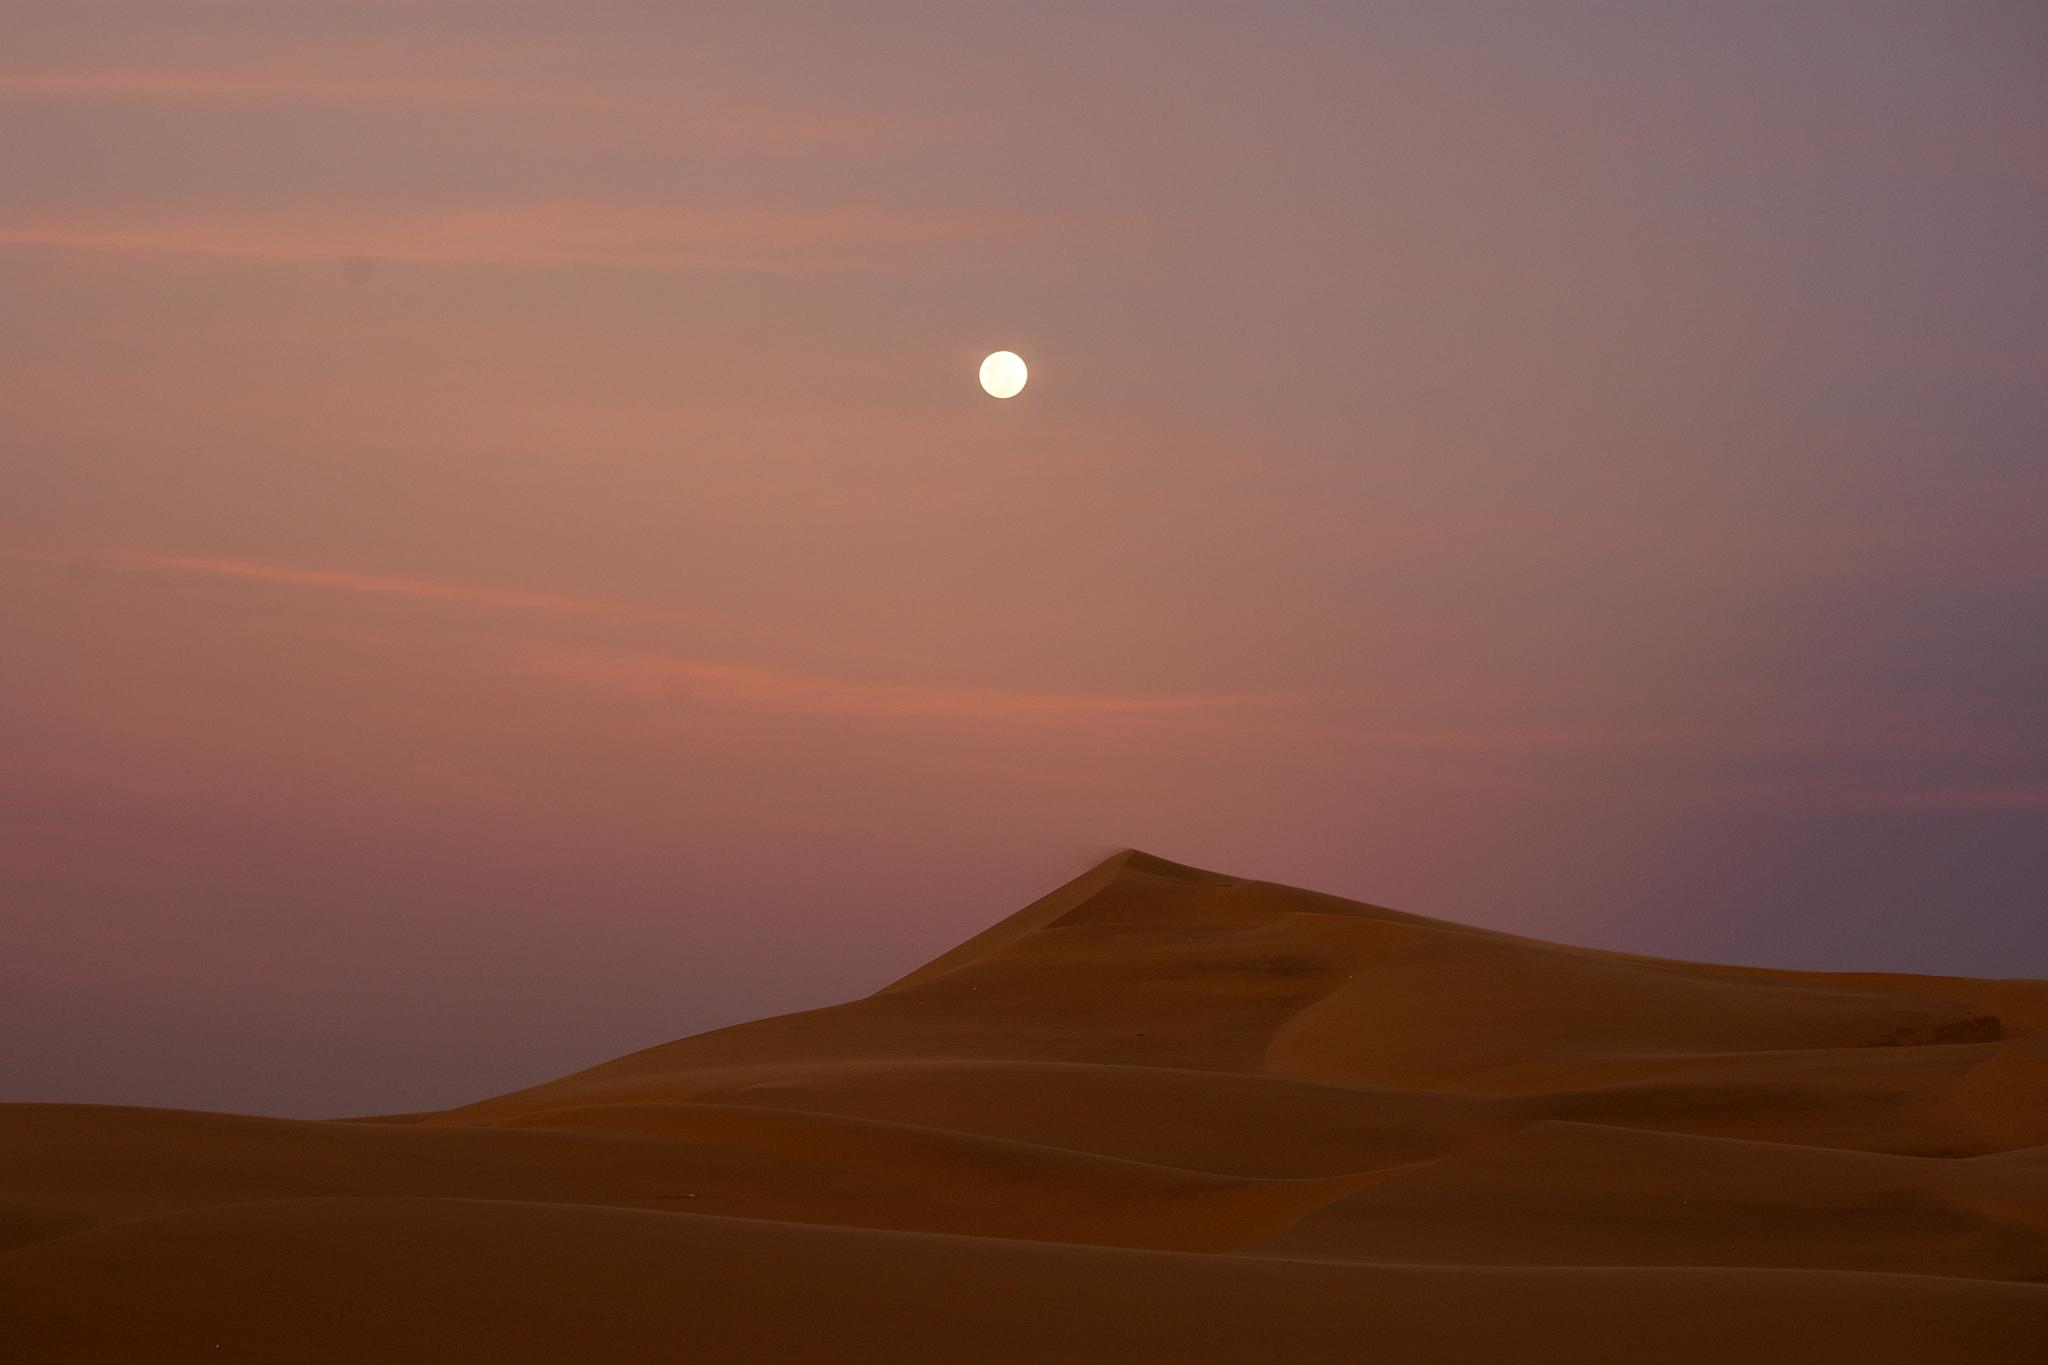 Last rays of sun and moon rises over dunes by Harrold Page